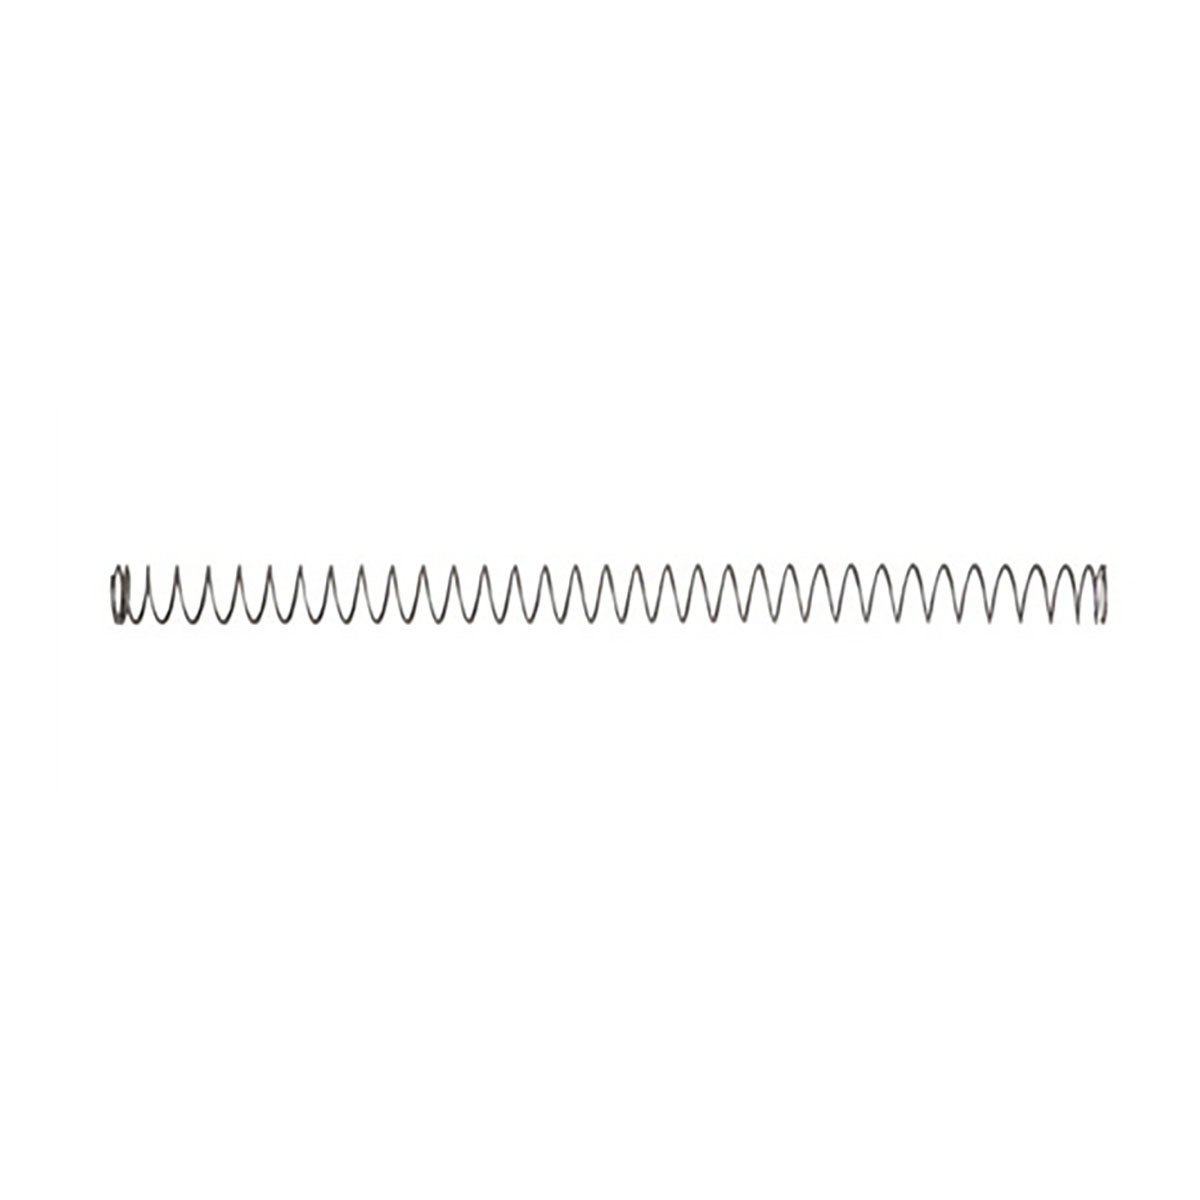 Superior Shooting Ar 15 Car 308 Stainless Steel Springs Remington 870 Trigger Assembly Diagram Http Wwwbrownellscom Back